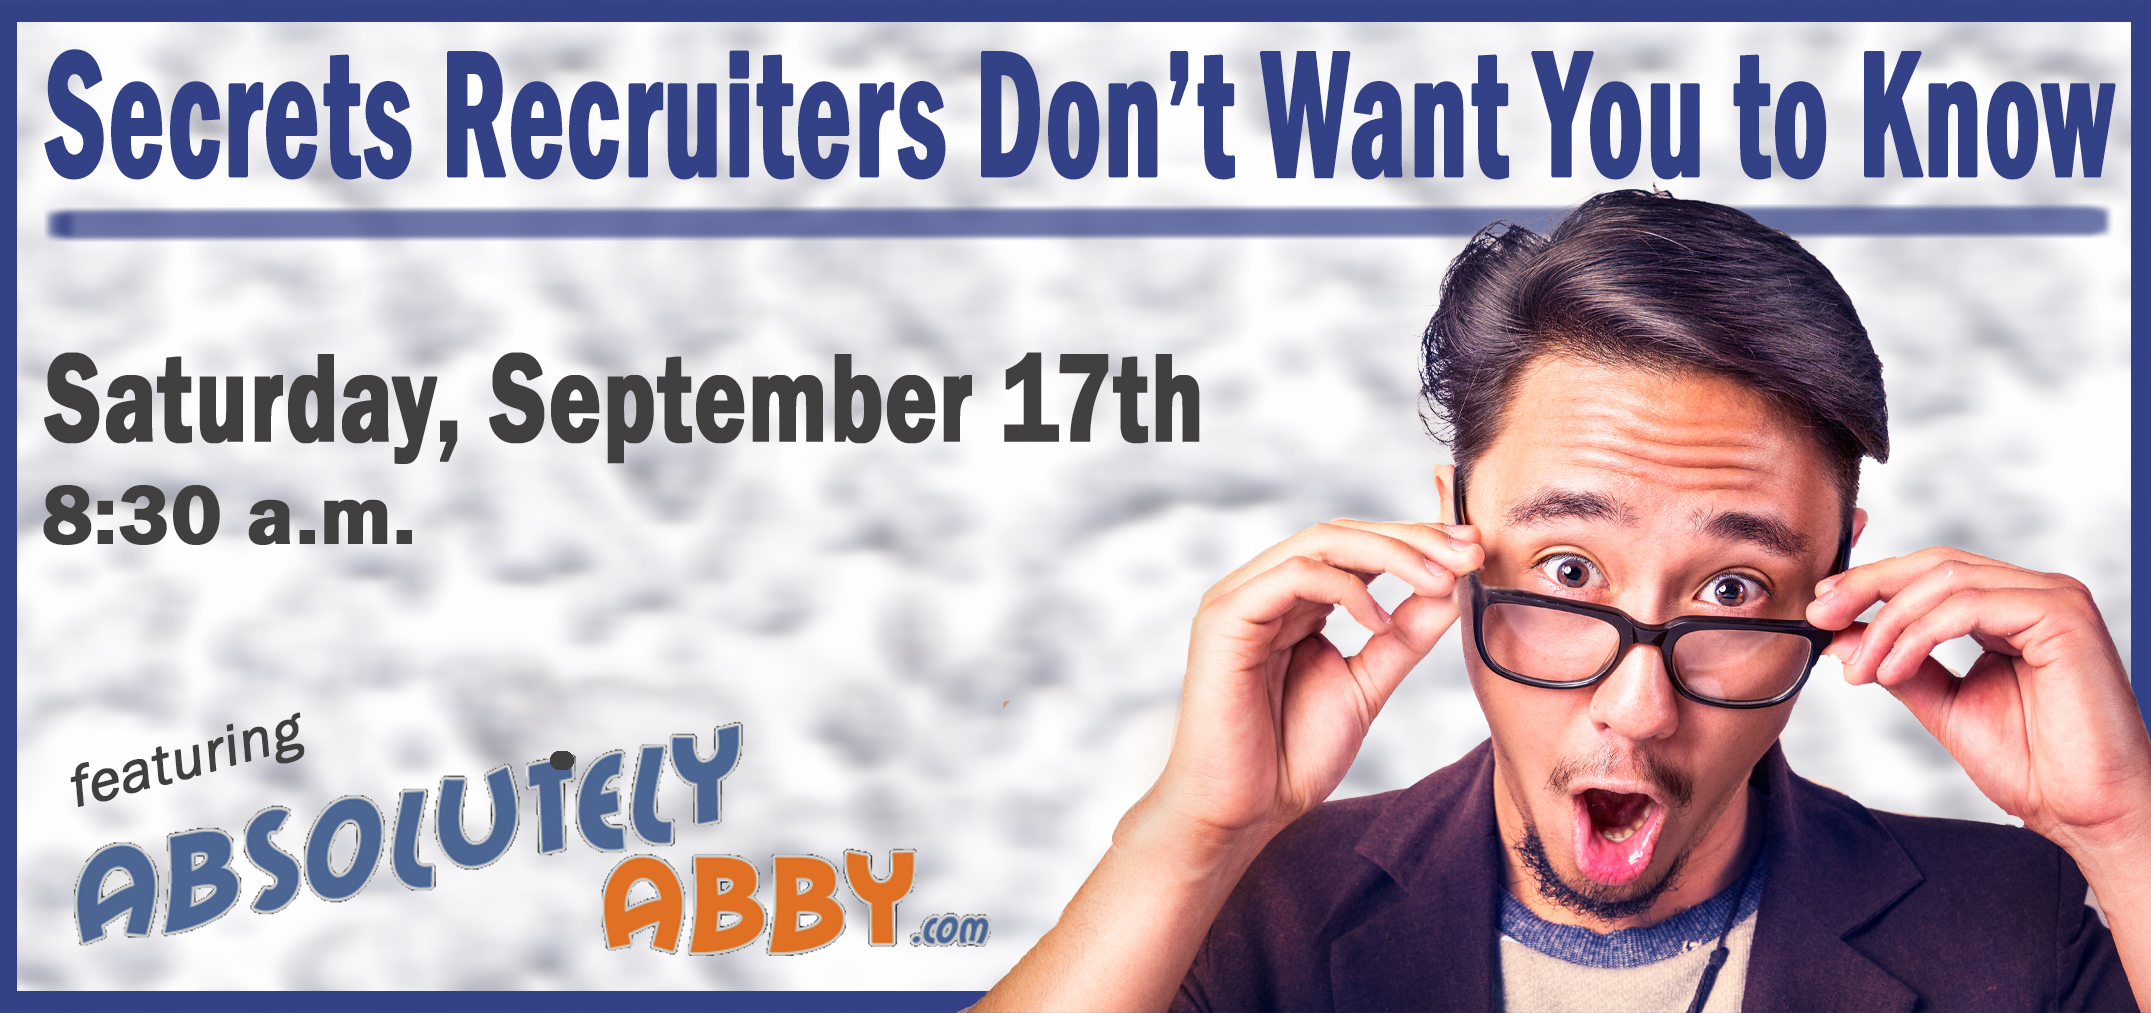 abby kohut shares recruiters secrets they don t want you to know